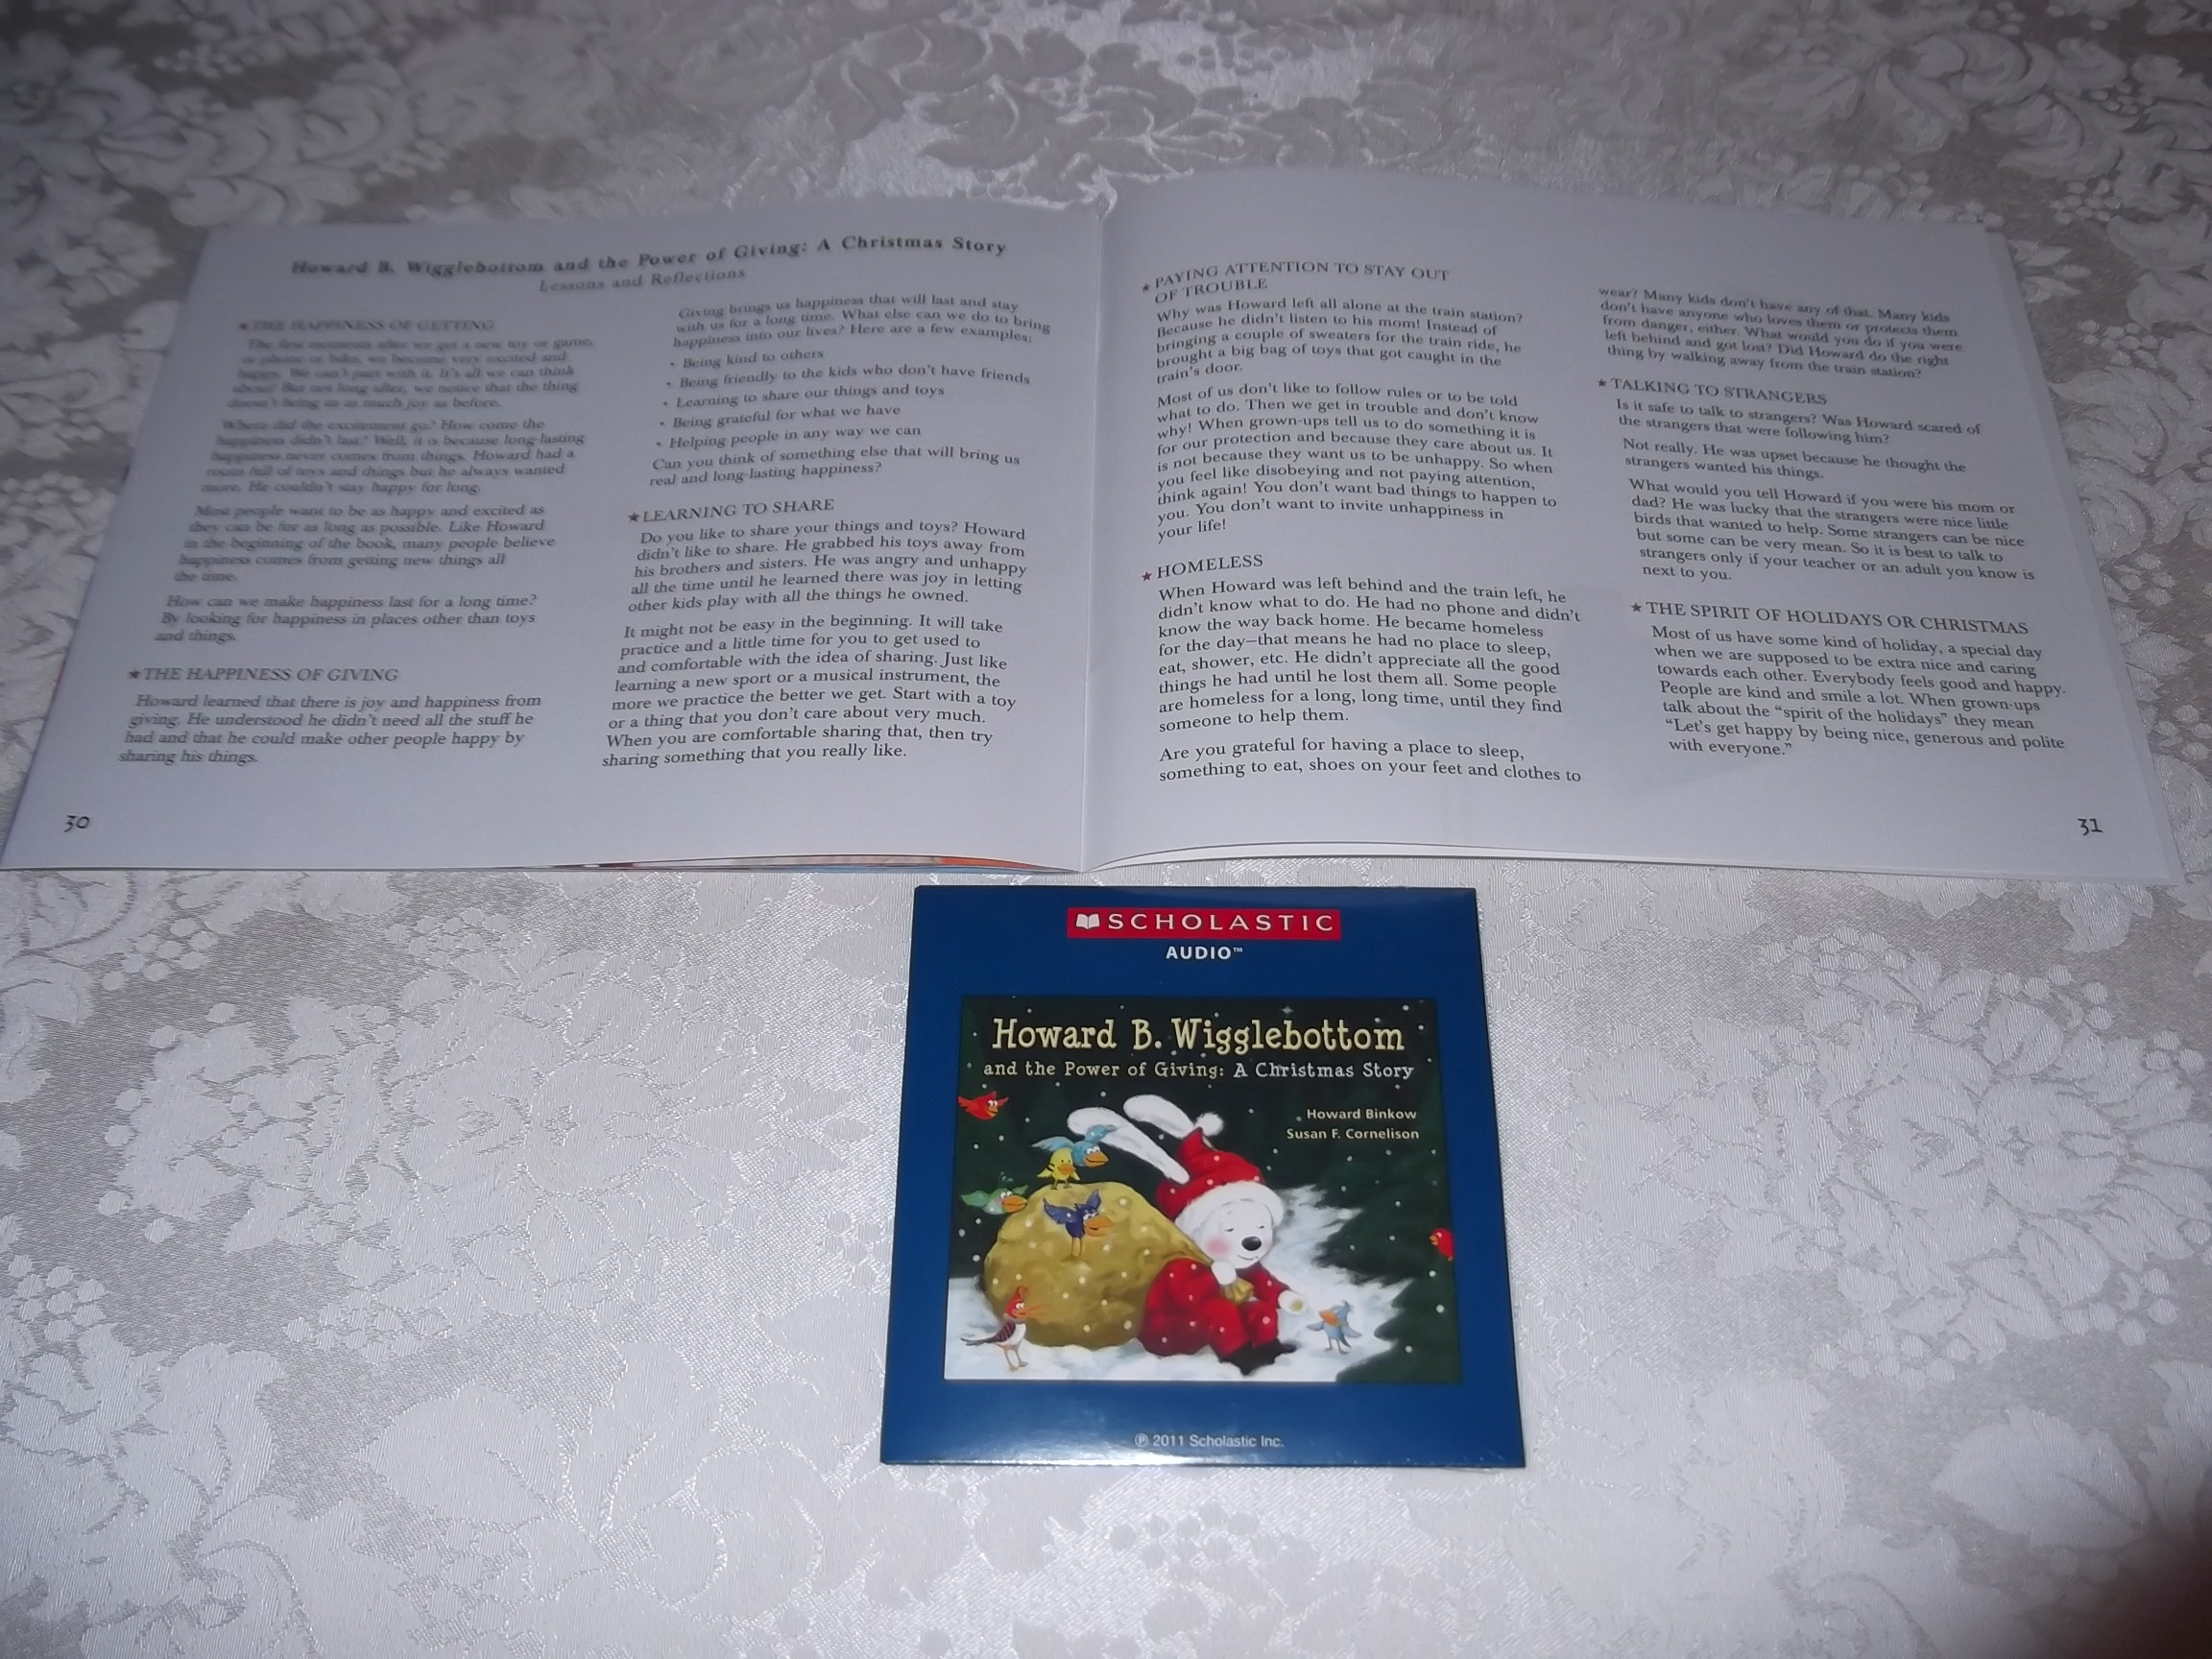 Image 1 of Howard B. Wigglebottom and the Power of Giving: A Christmas Story Audio CD & SC